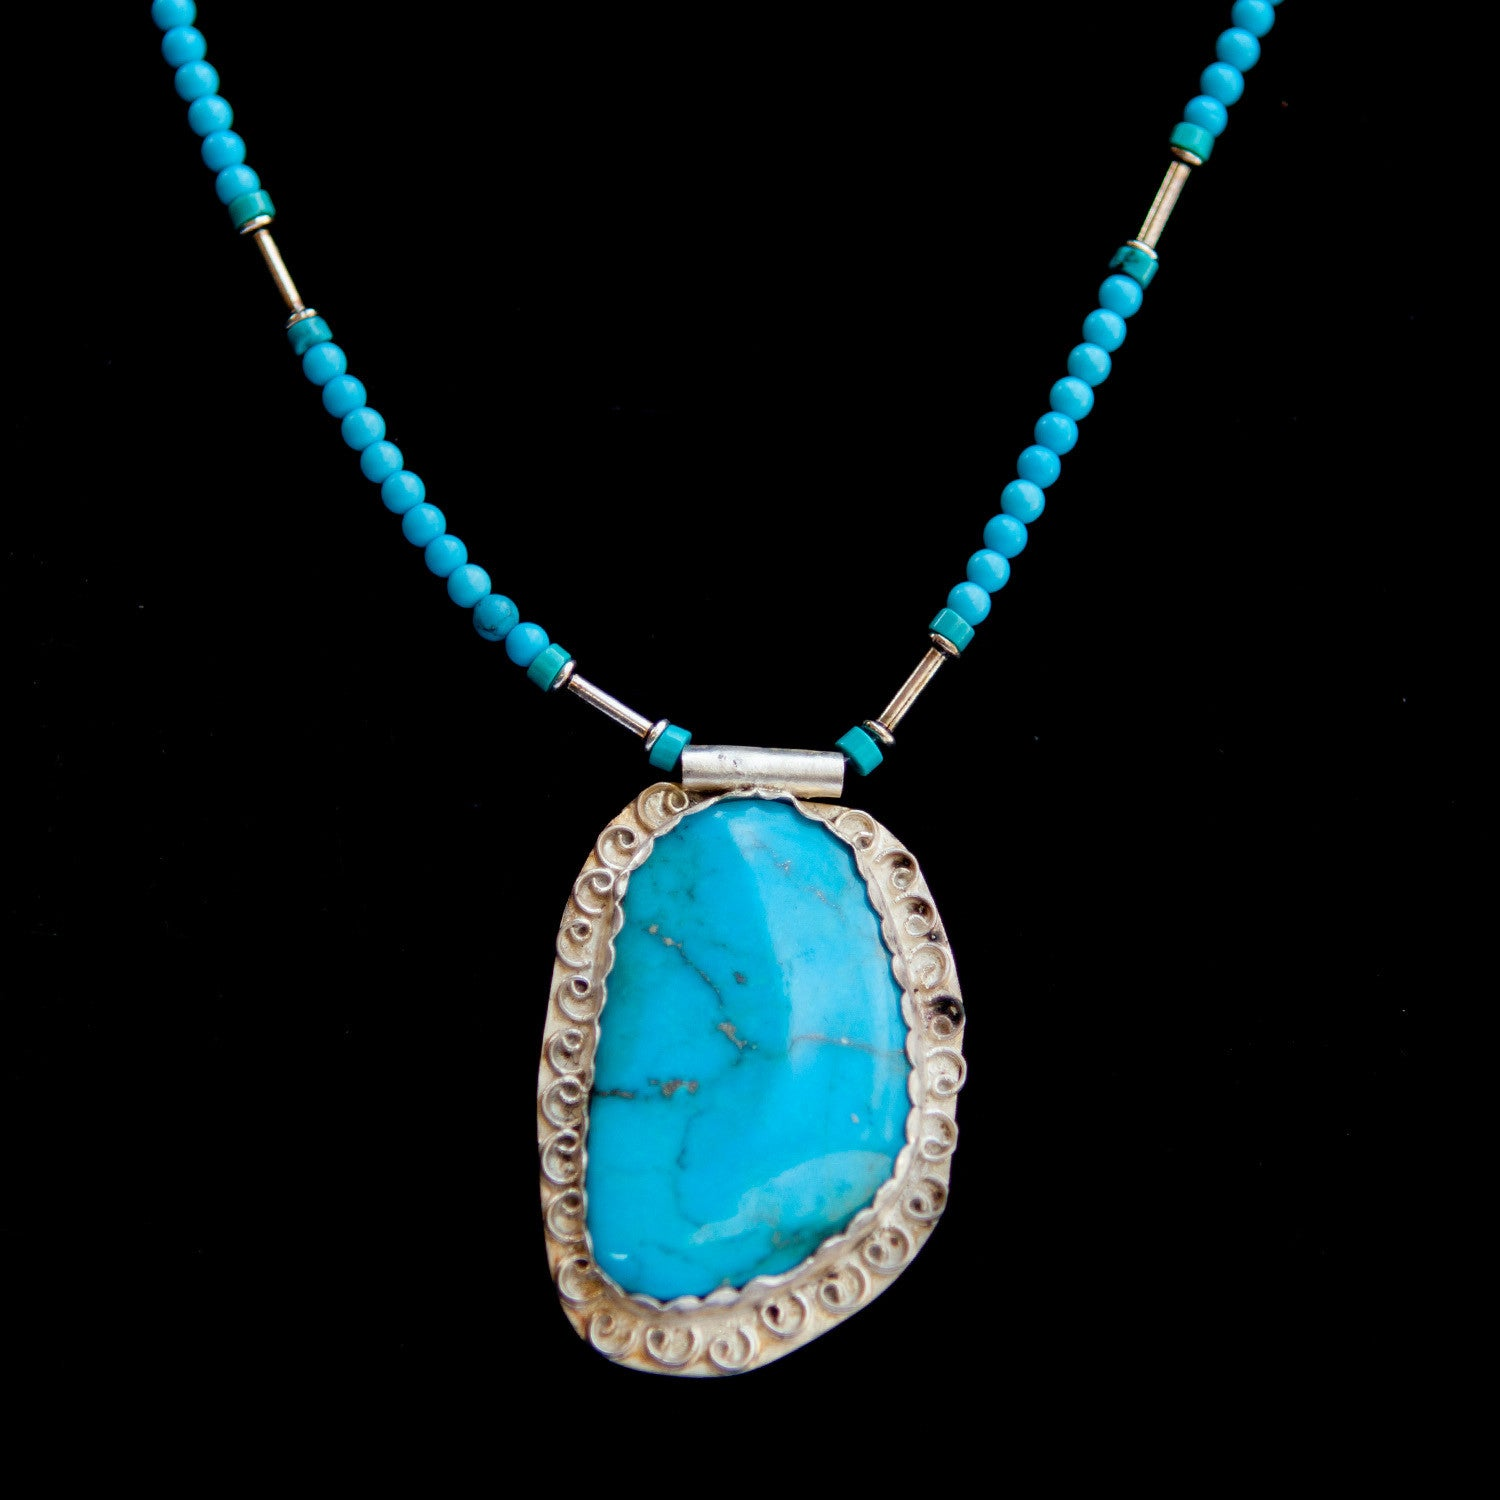 Turquoise Stone on Beaded Chain